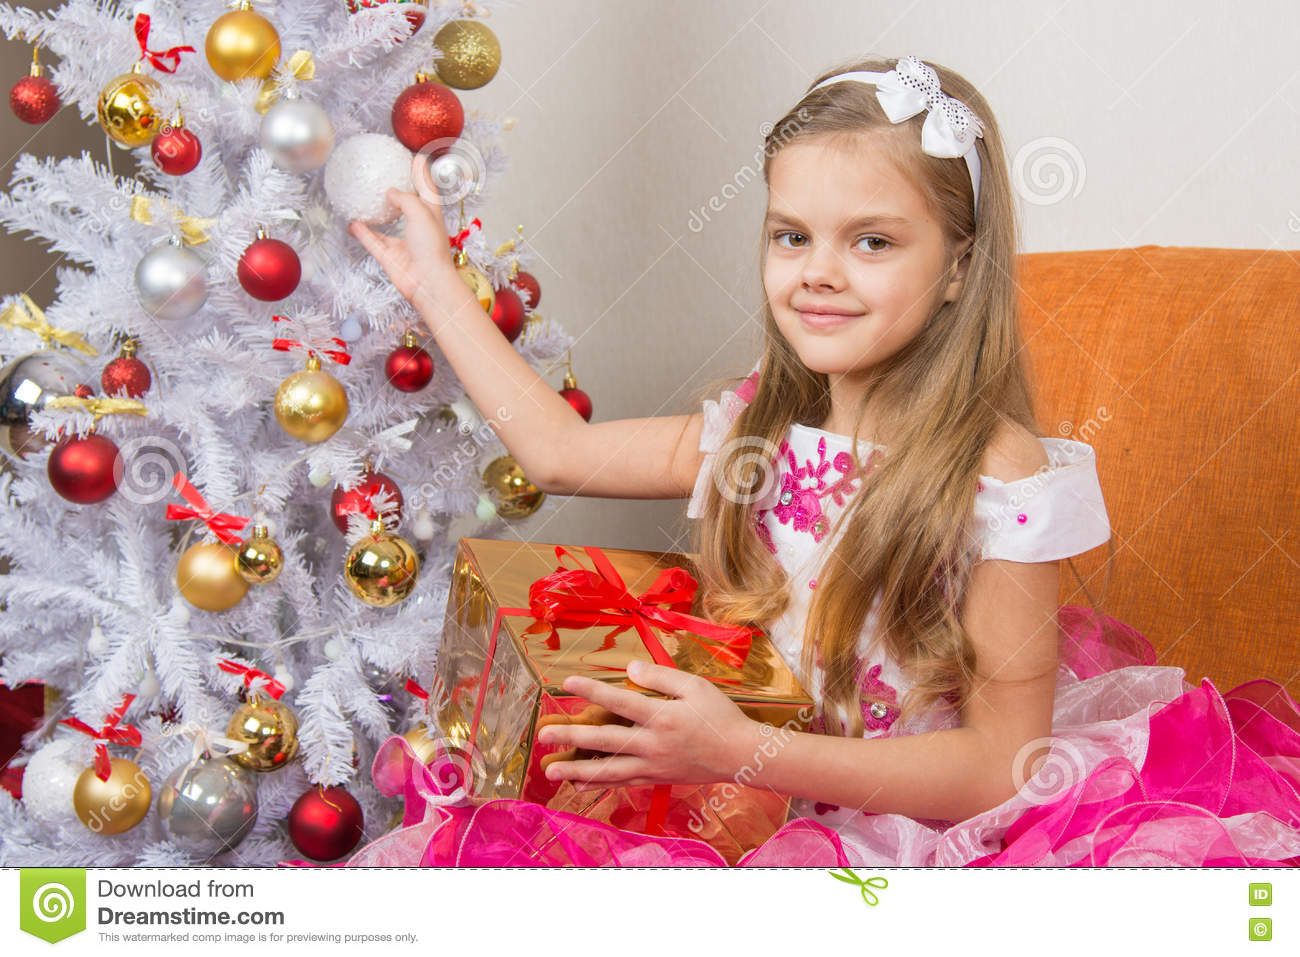 Seven-year girl in beautiful dress sits with a gift and holding a Christmas ball in hands